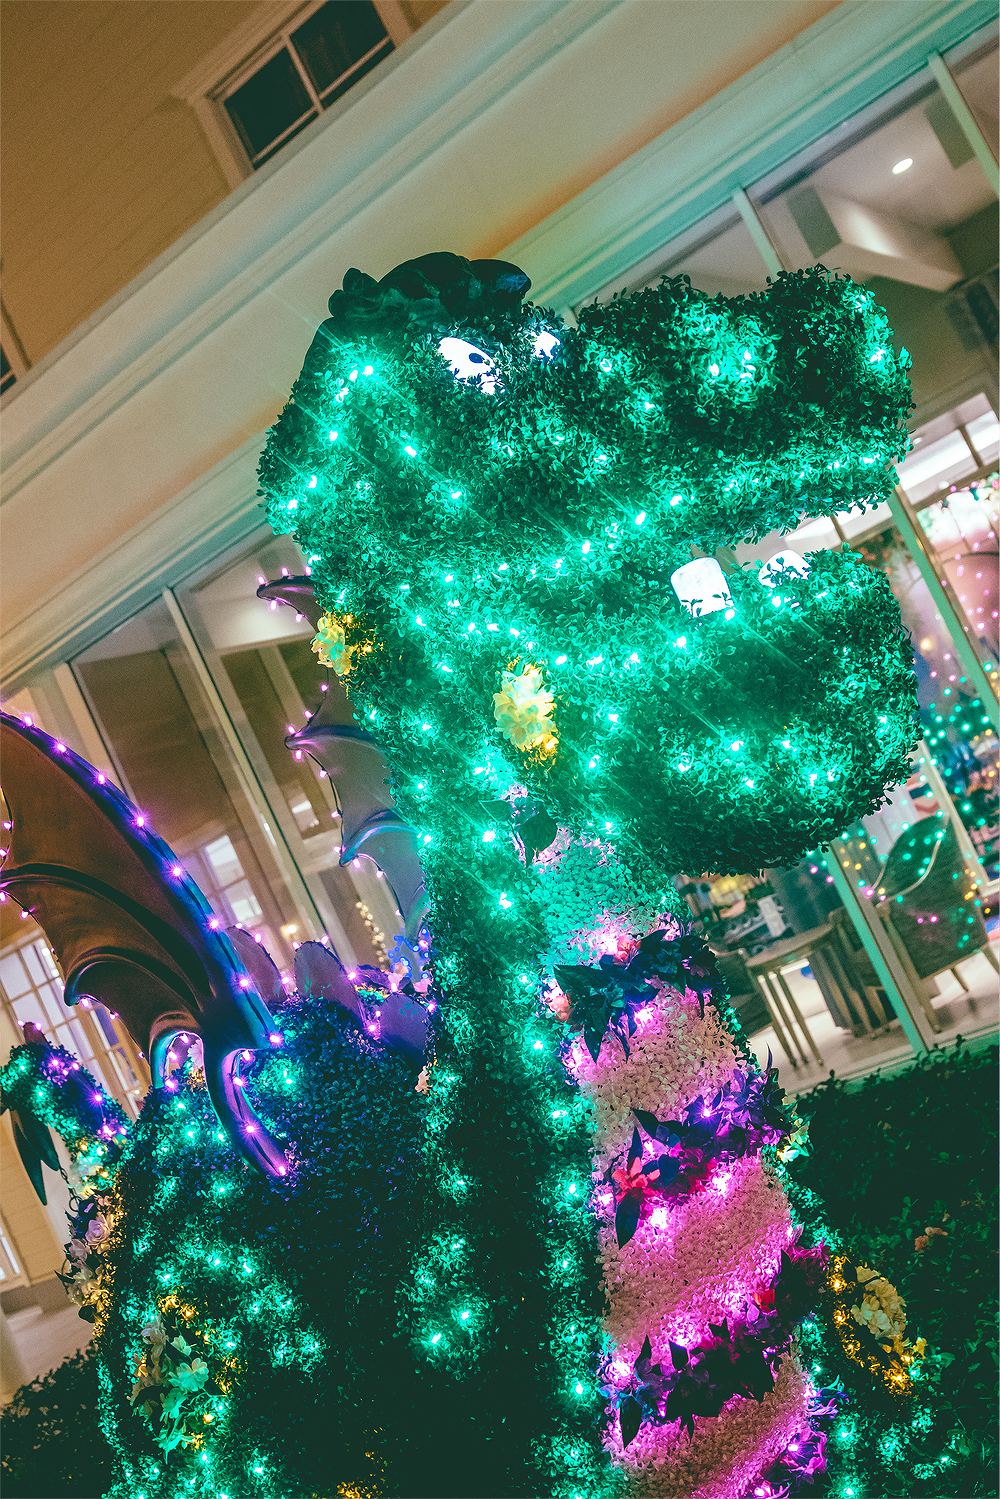 The Wish courtyard featured topiary floats from Dreamlights!